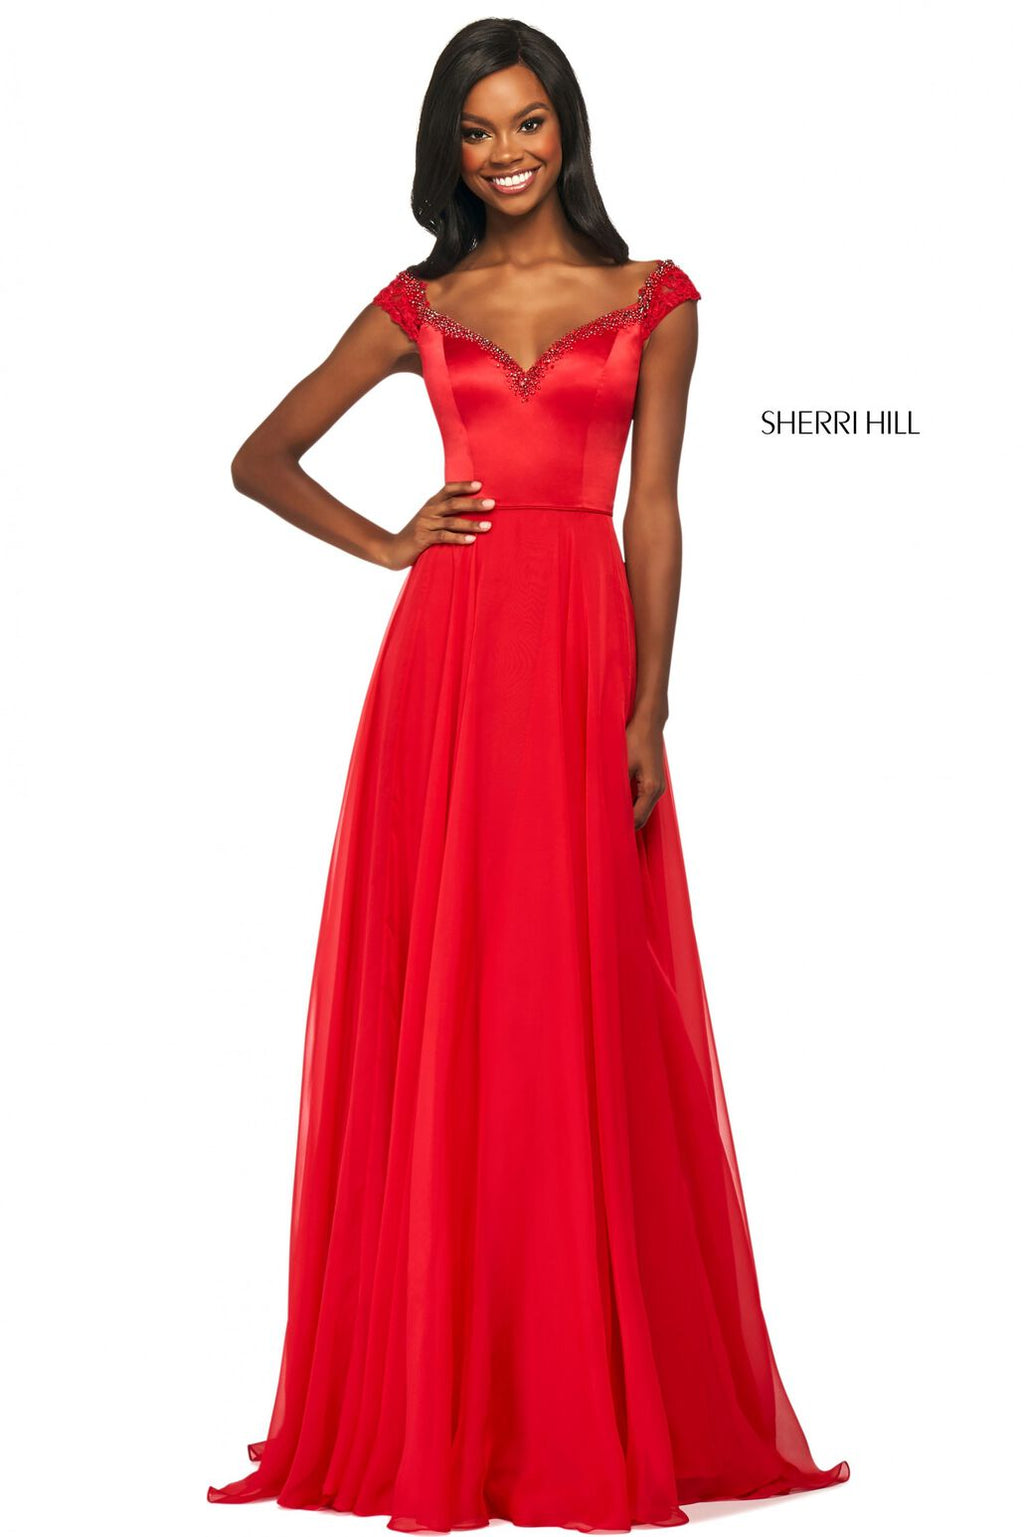 This Sherri Hill 53549 A-line gown in red features a satin bodice with a beaded sweetheart off-the-shoulder bodice, lace cap sleeves, and a chiffon skirt.